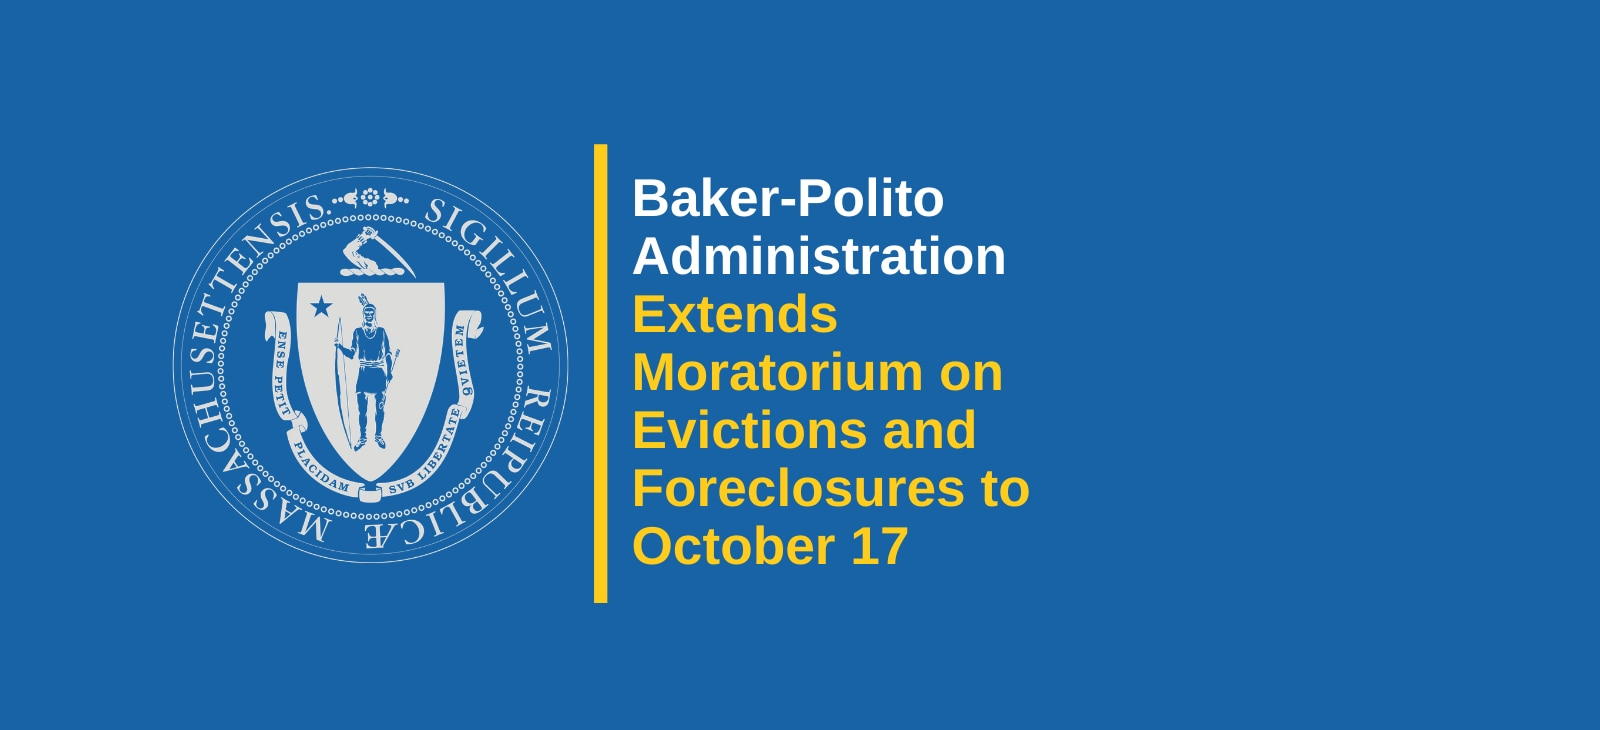 Baker-Polito Administration Extends Moratorium on Evictions and Foreclosures to October 17